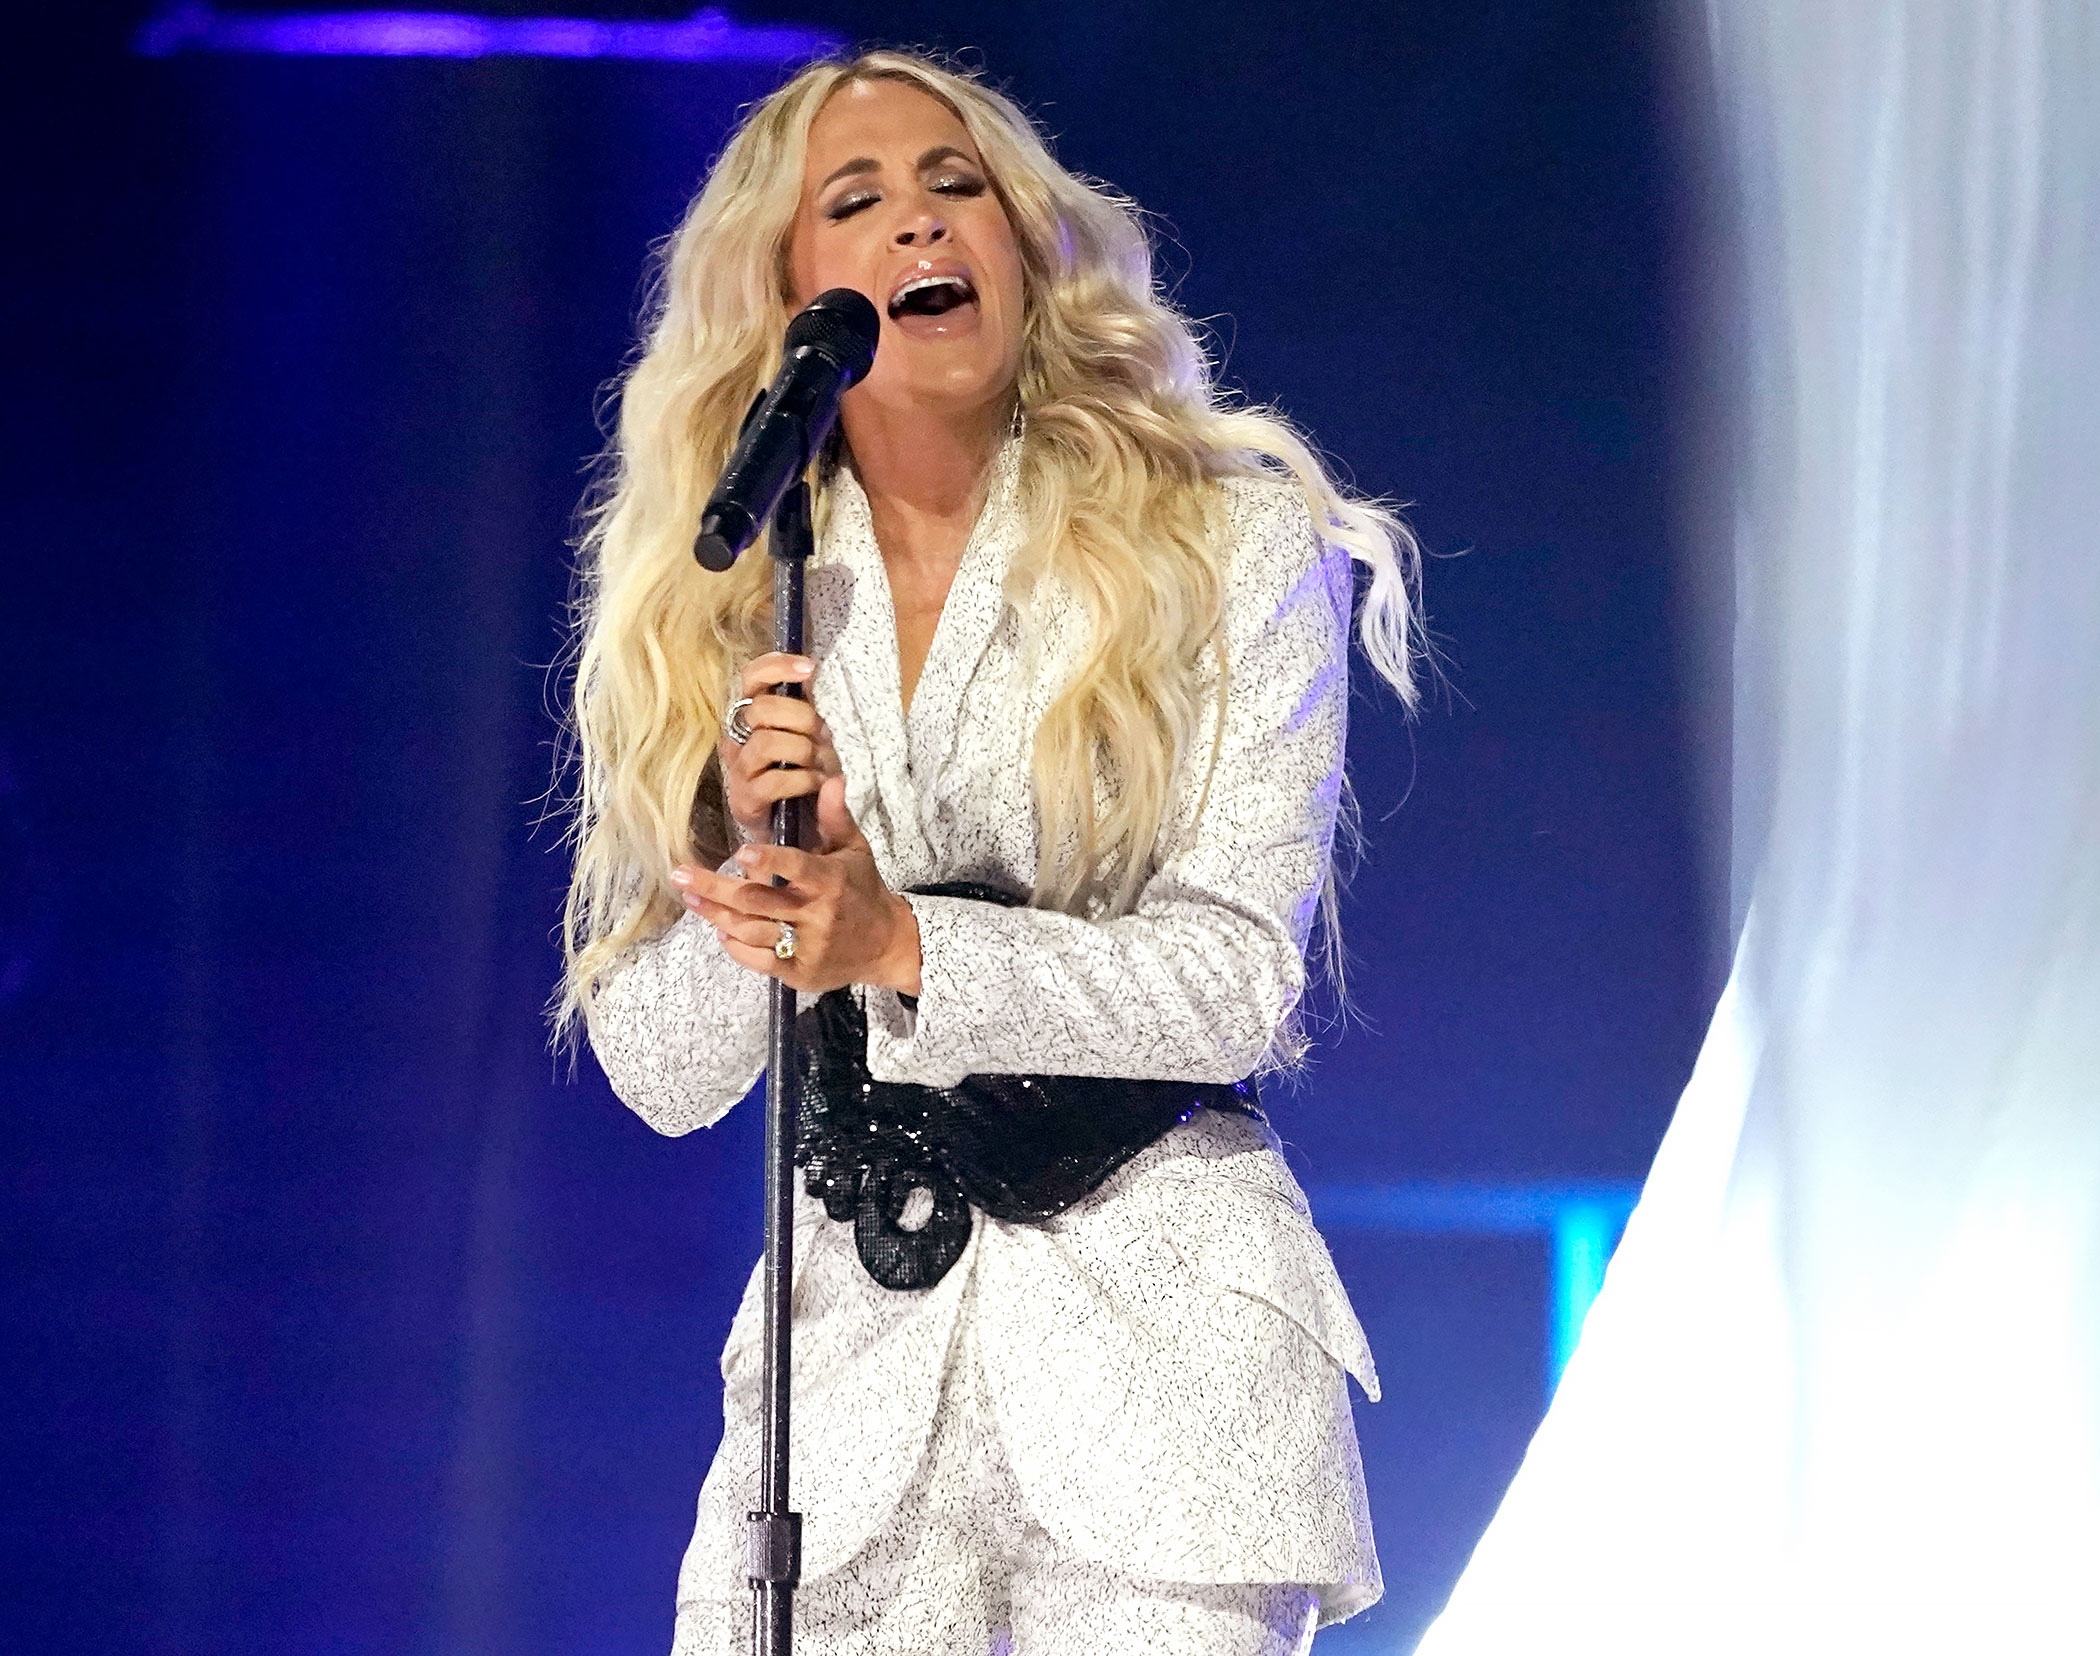 Bow Down! Carrie Underwood Delivers Showstopping Performance at CMT Awards